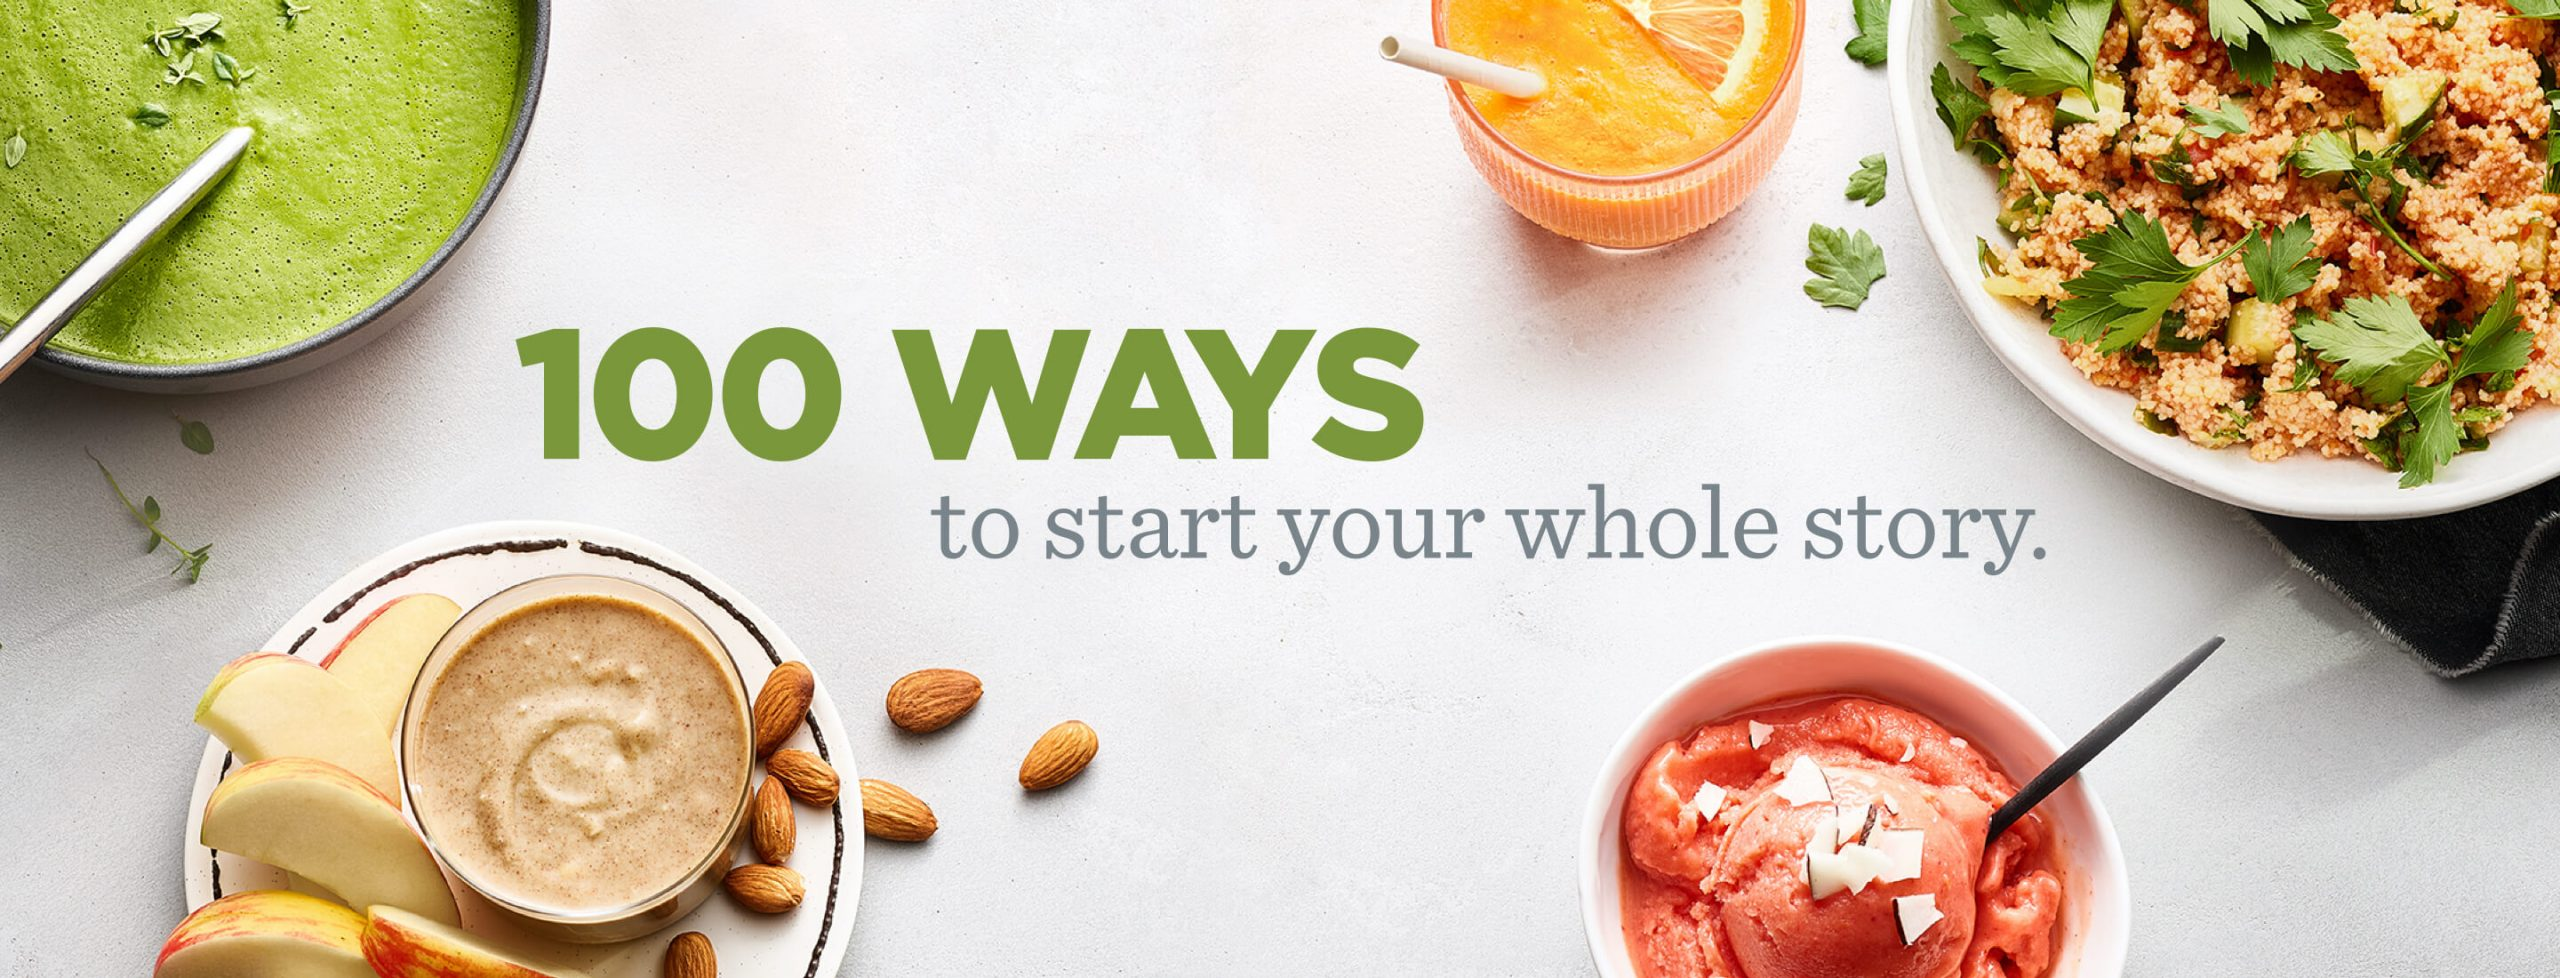 vitamix 100 ways to start your whole journey banner image